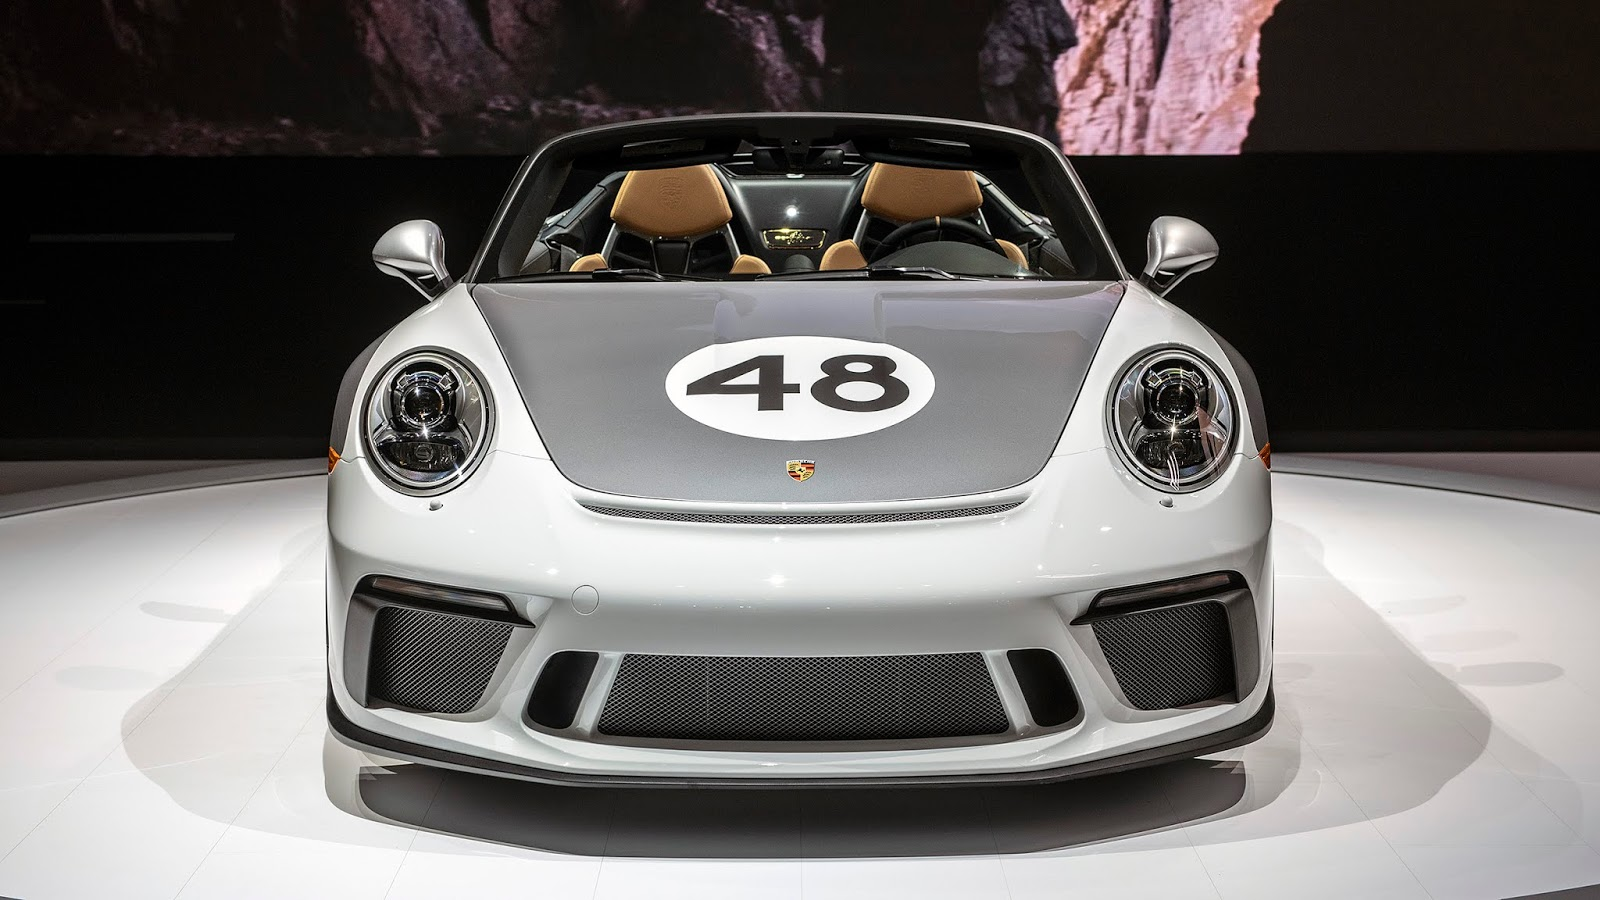 porsche-911-speedster-heritage-design-package-new-york-2019-6.jpg